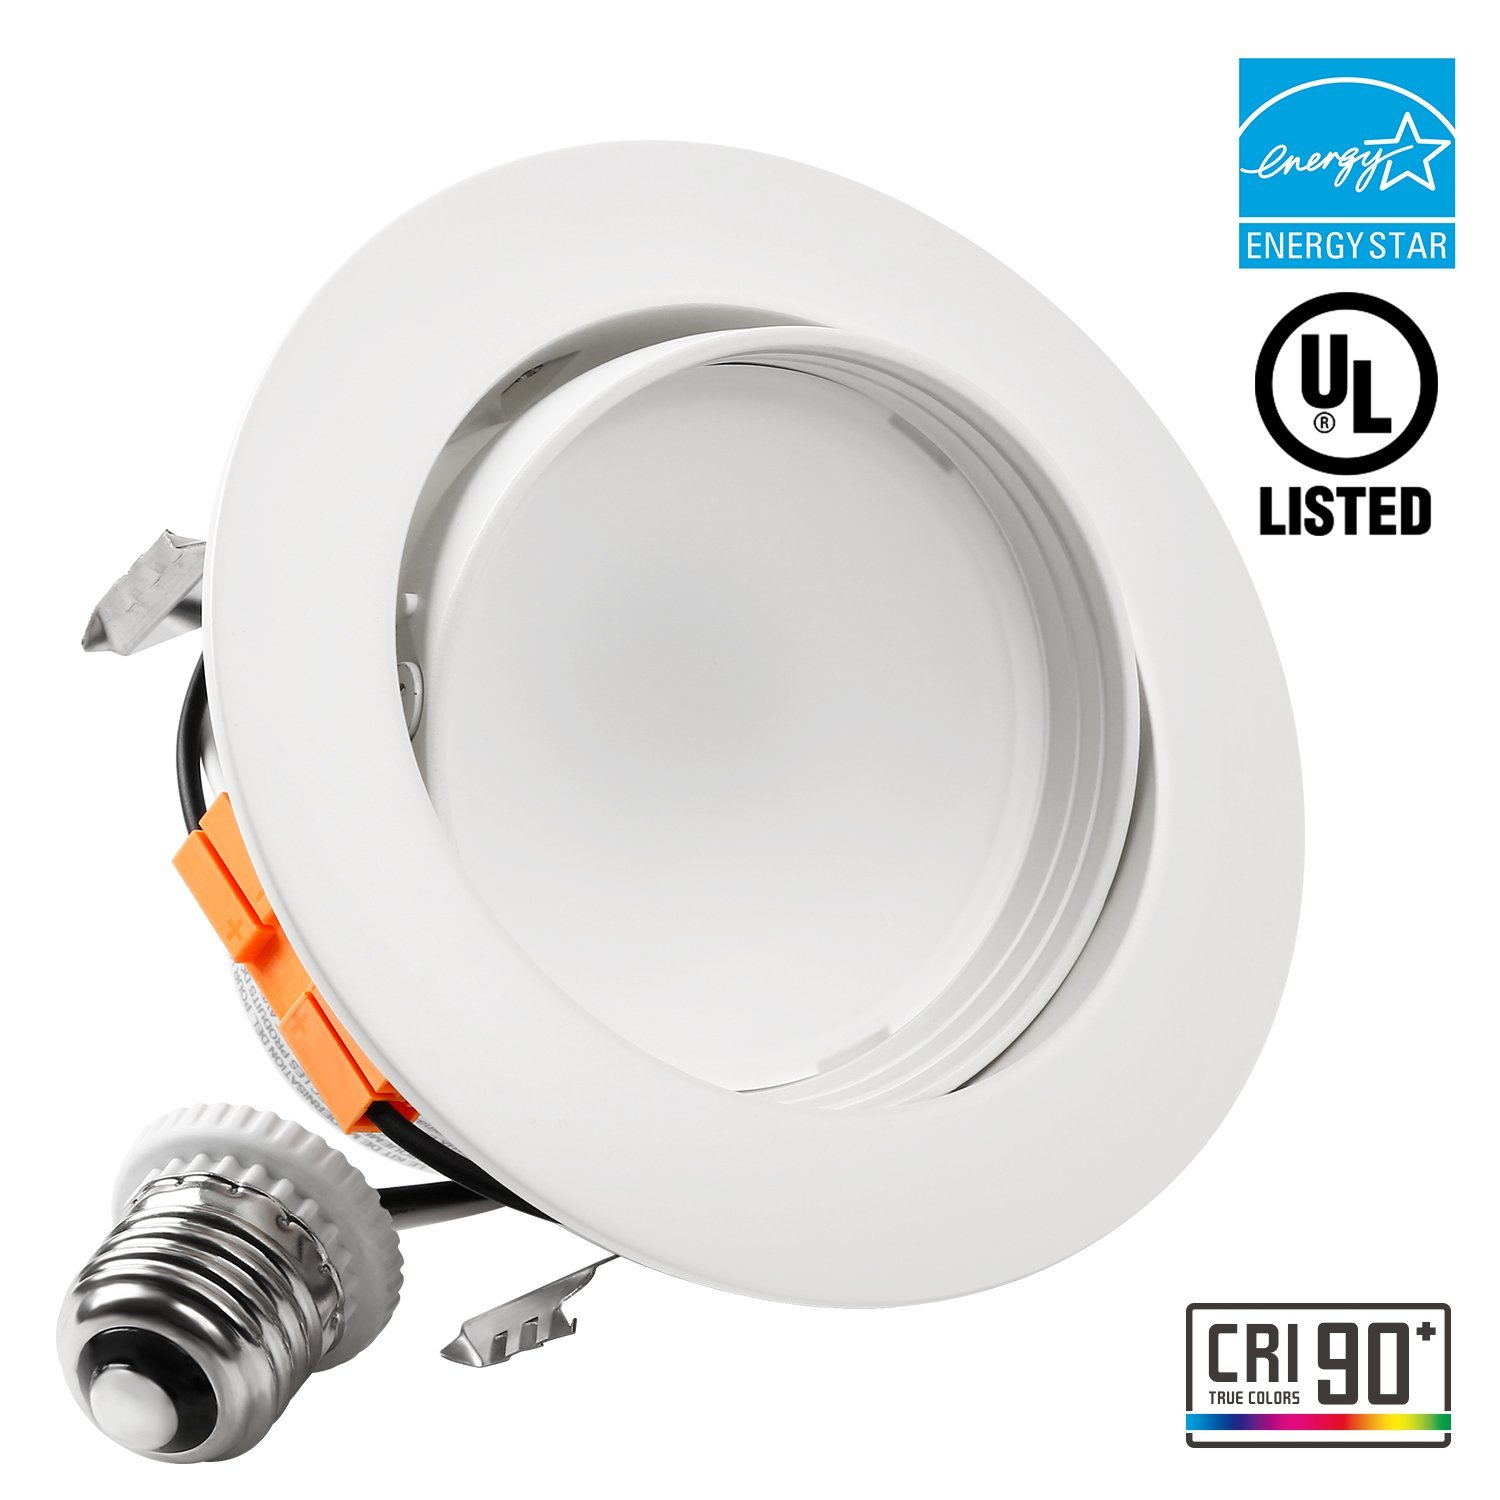 4 Inch LED Dimmable Gimbal Recessed Retrofit Downlight, 10W (65W Equiv.), High CRI90+ Directional Ceiling Light Fixture,... by